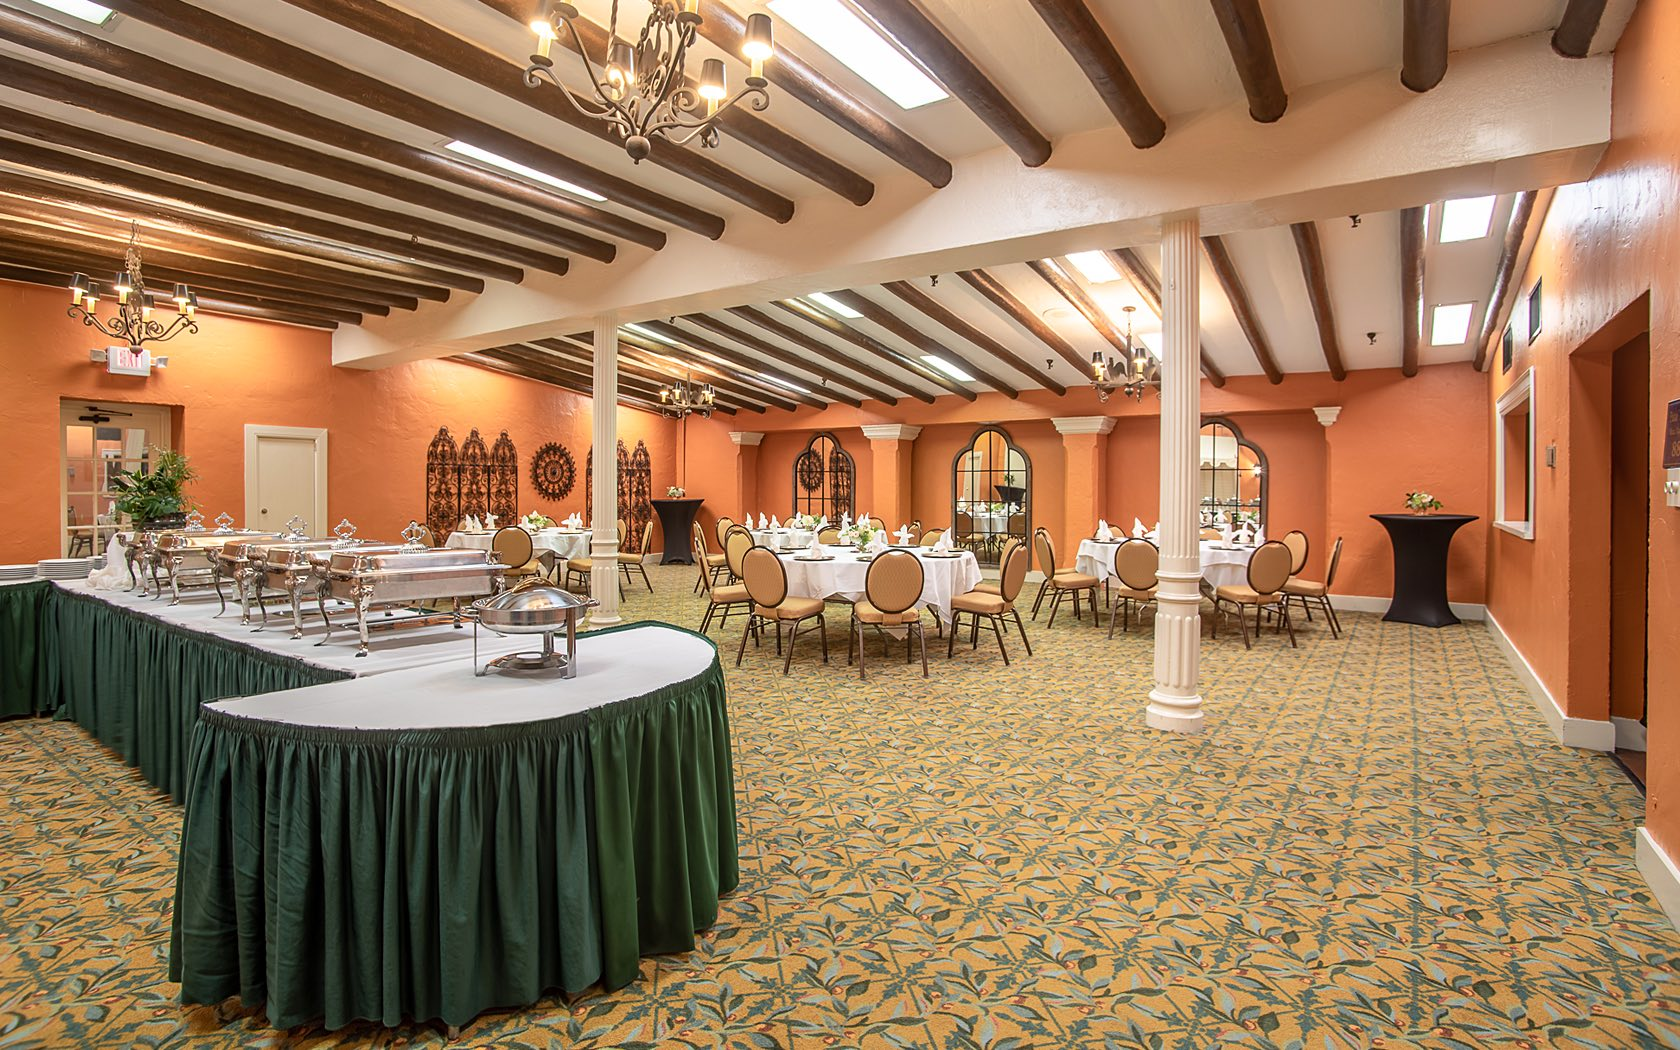 event space set for a banquet